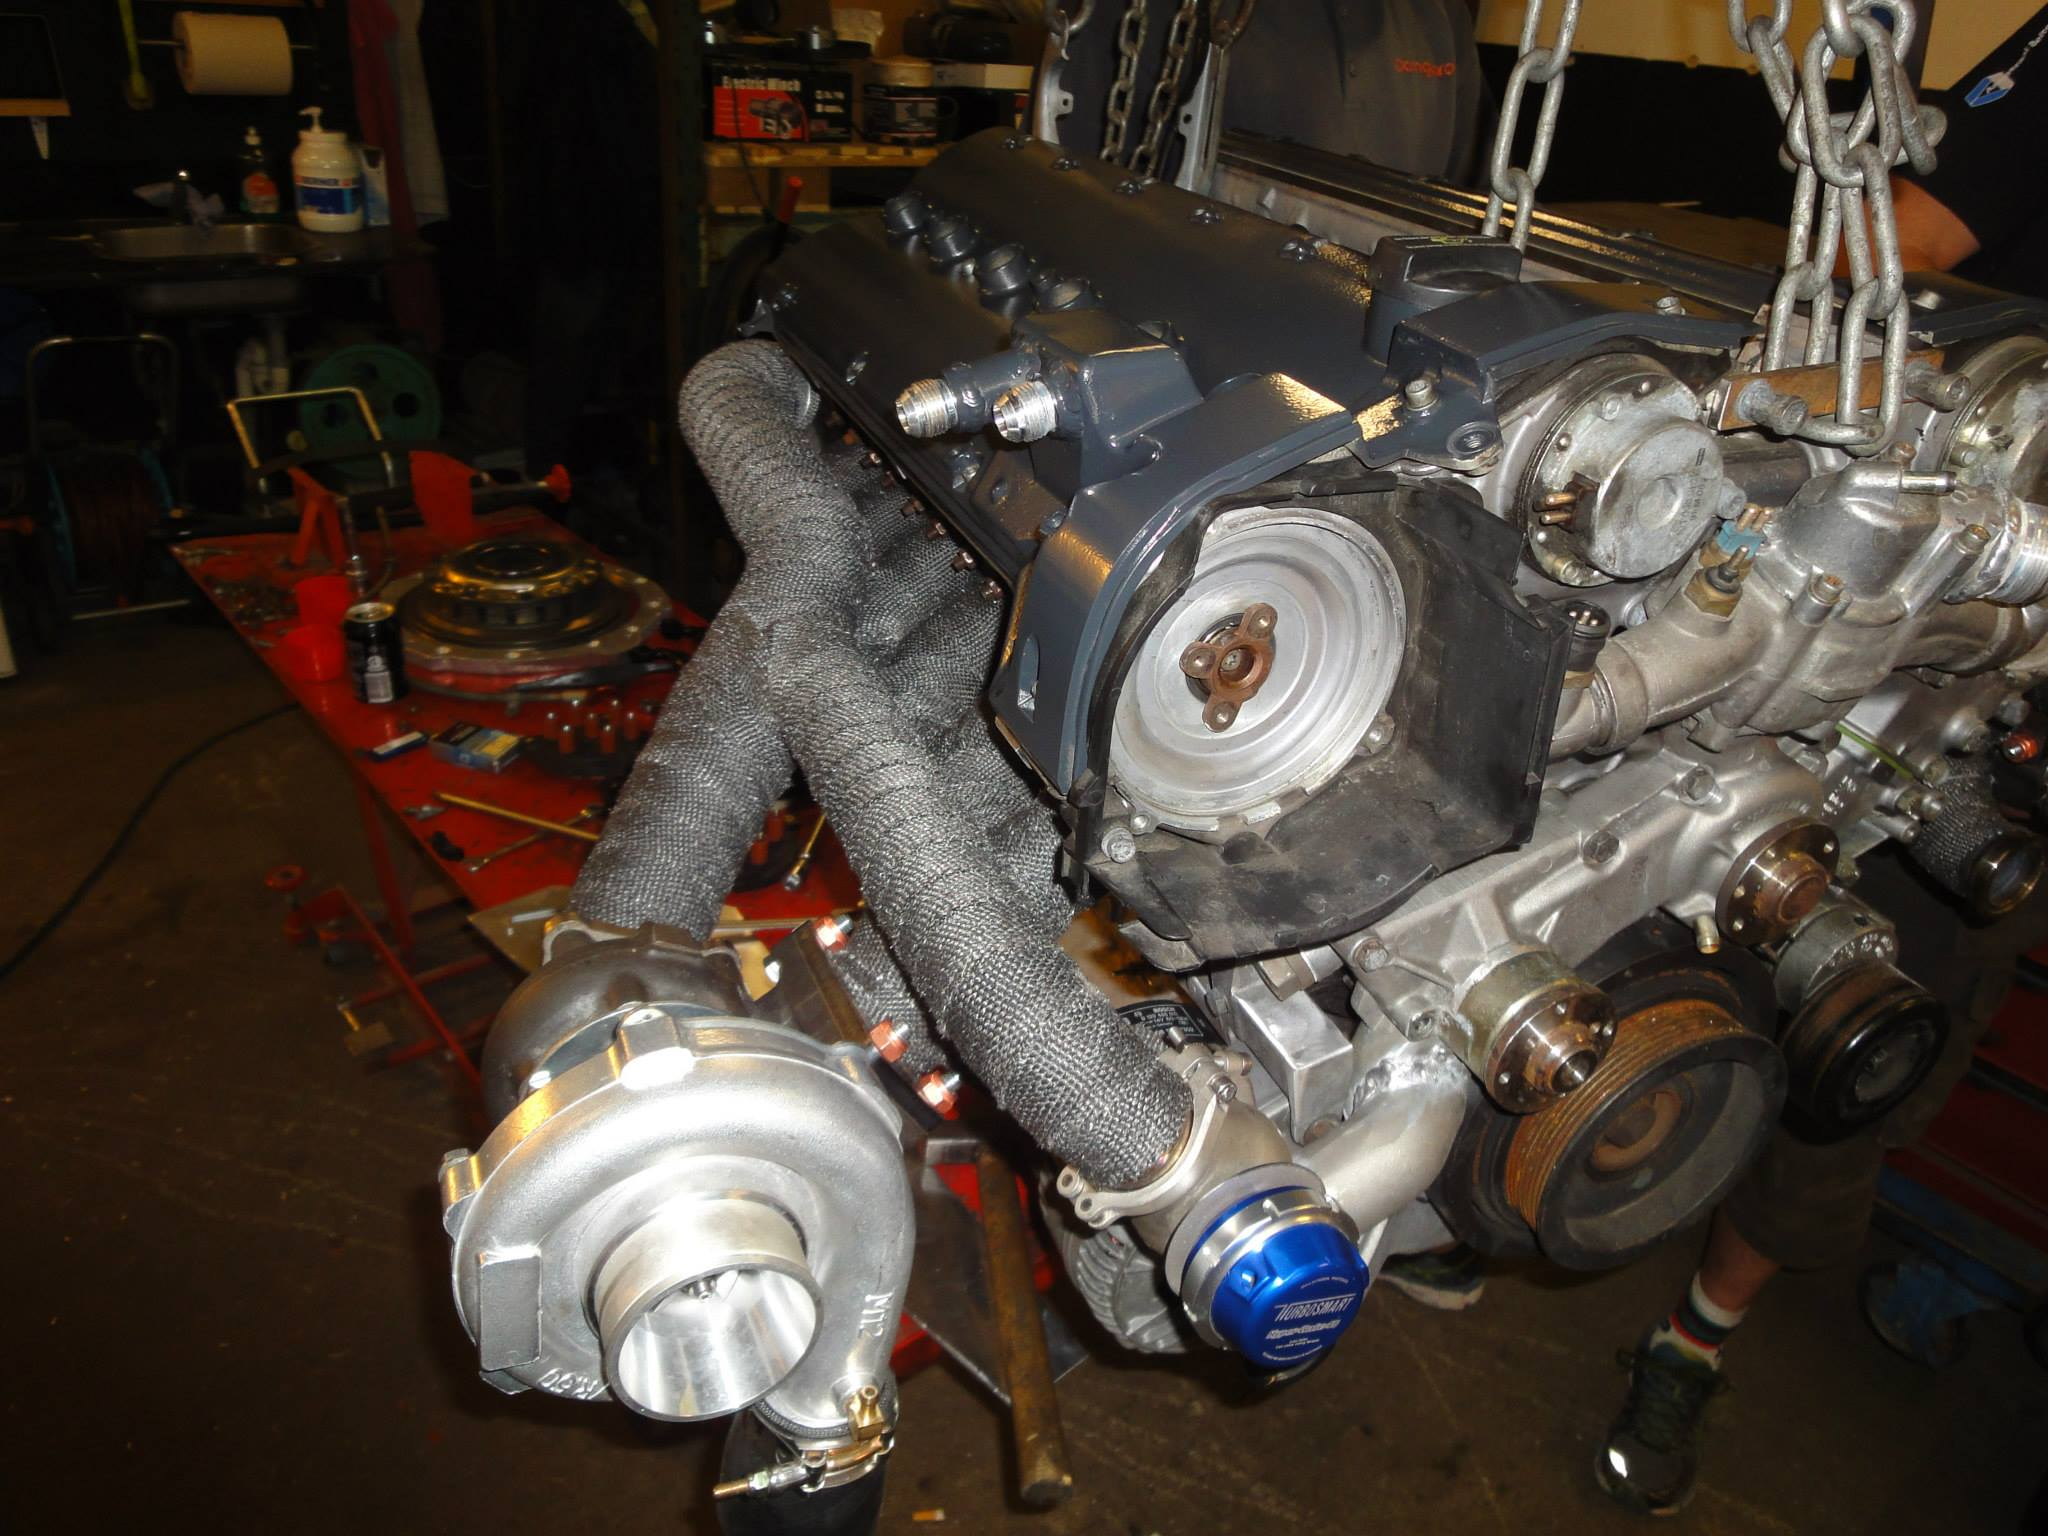 Nissan R33 With A Twin Turbo Mercedes V12 Engine Swap Depot Wiring Harness Repairing Your